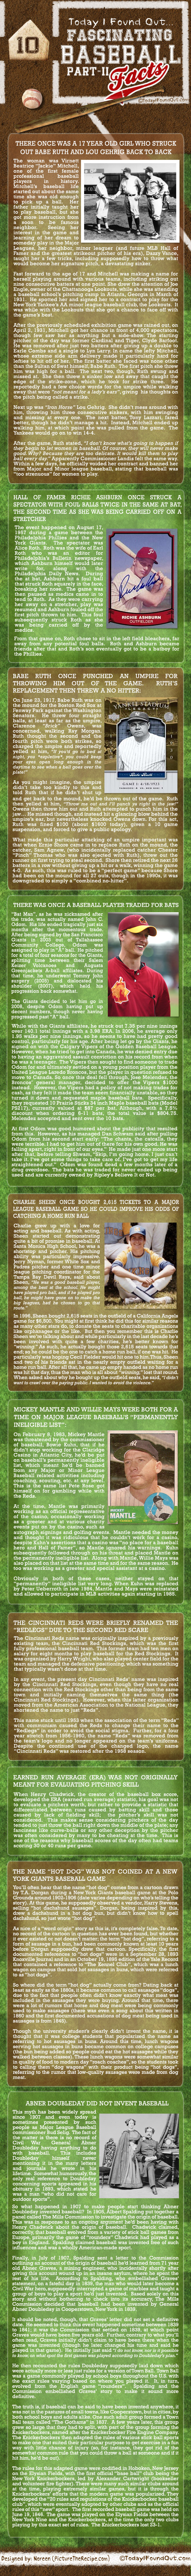 Fascinating Baseball Facts Infographic Part 2